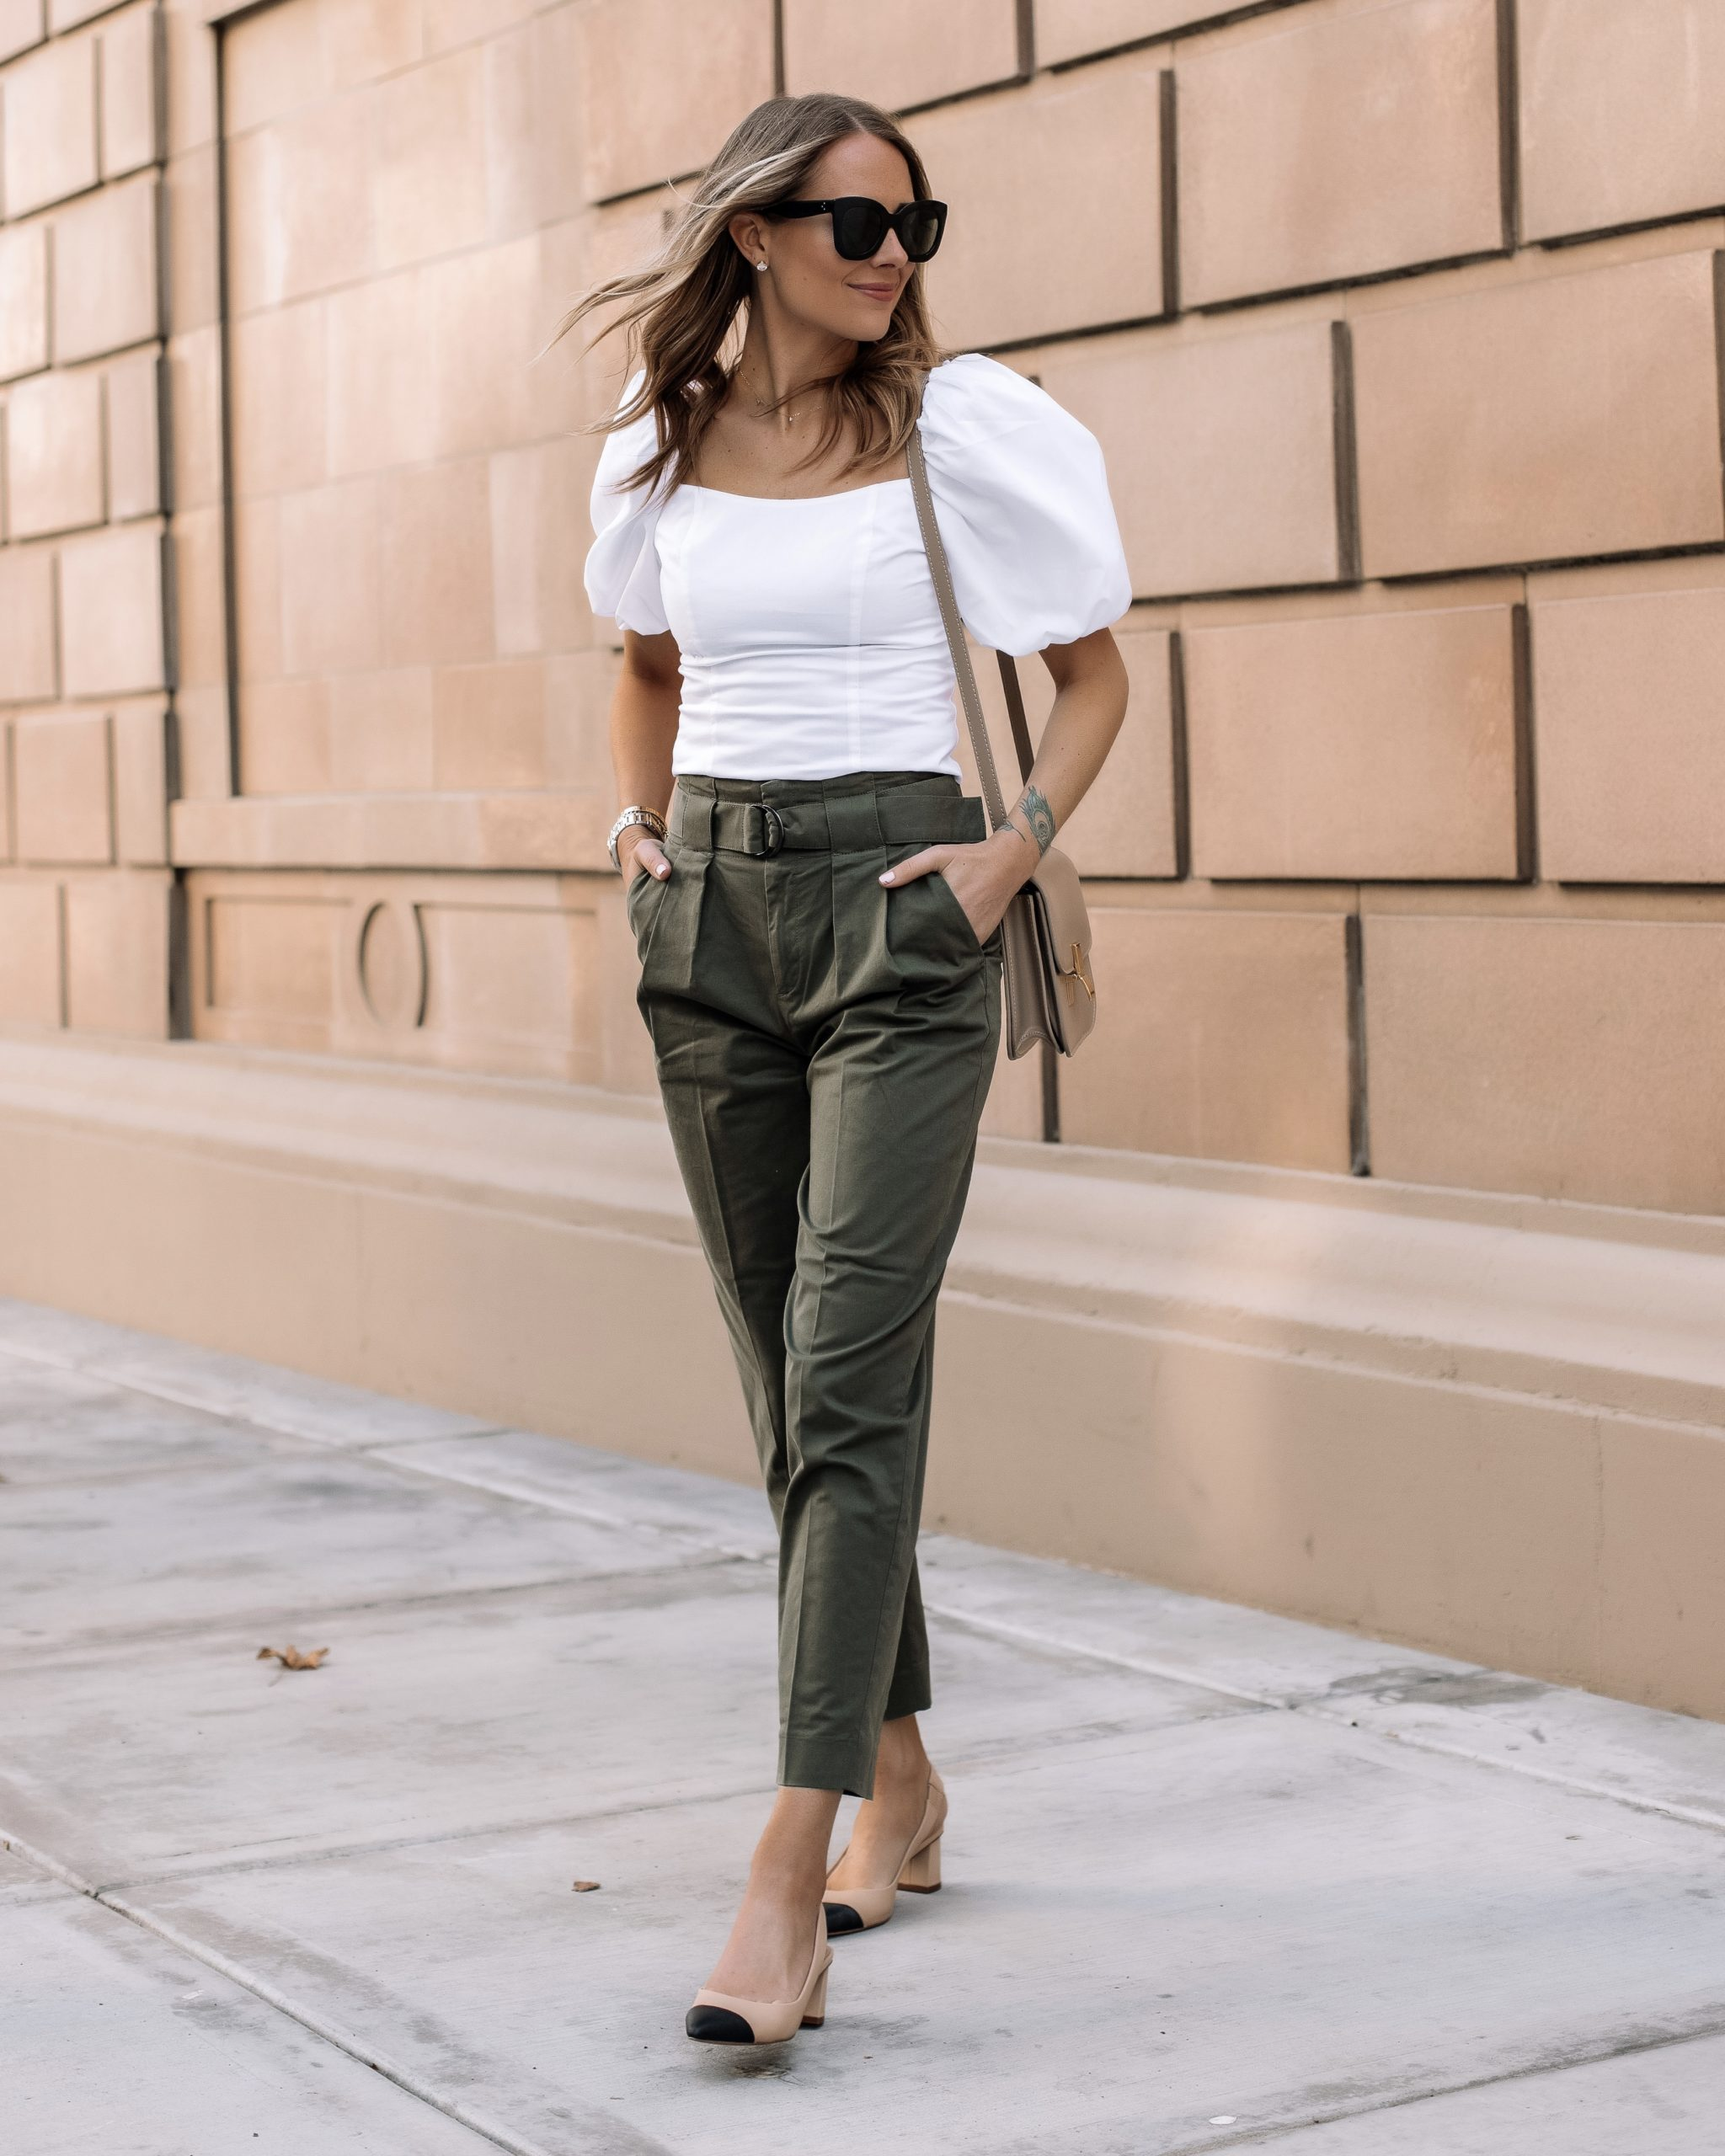 Fashion Jackson Wearing Banana Republic White Puff Sleeve Top Banana Republic Olive Green Trousers Beige Slingbacks Workwear Outfit